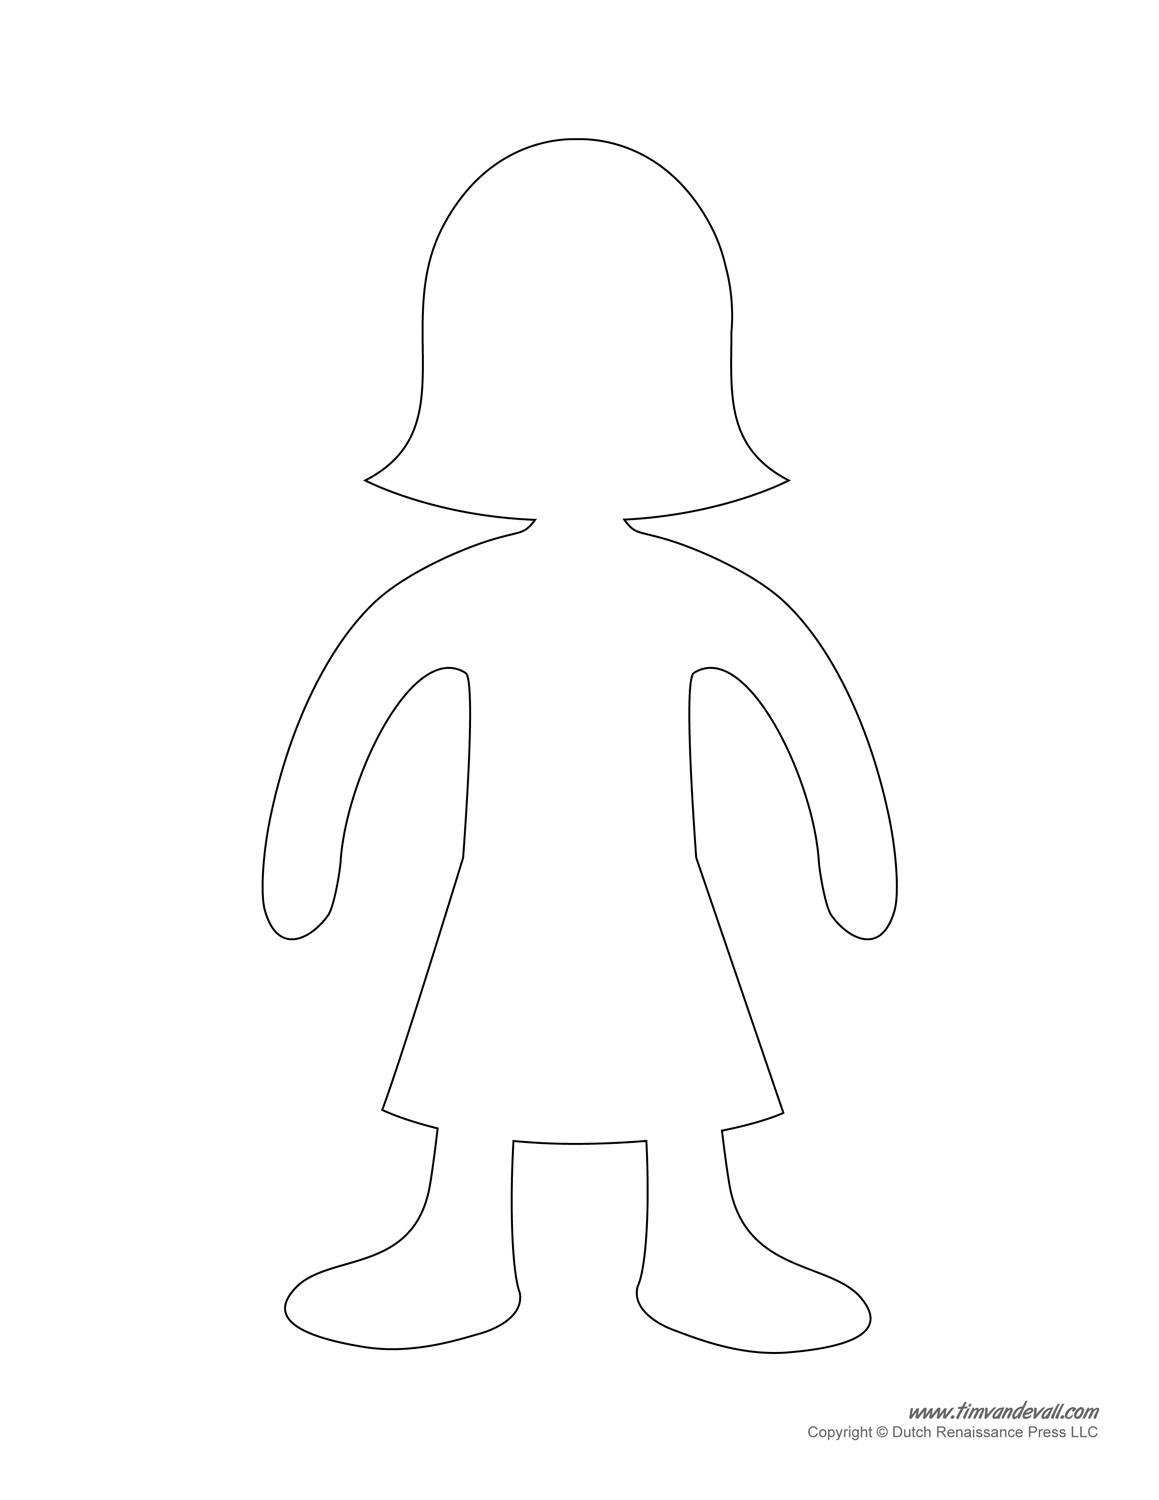 photo regarding Printable Paper Doll Template referred to as Printable Paper Doll Templates Produce Your Particular Paper Dolls